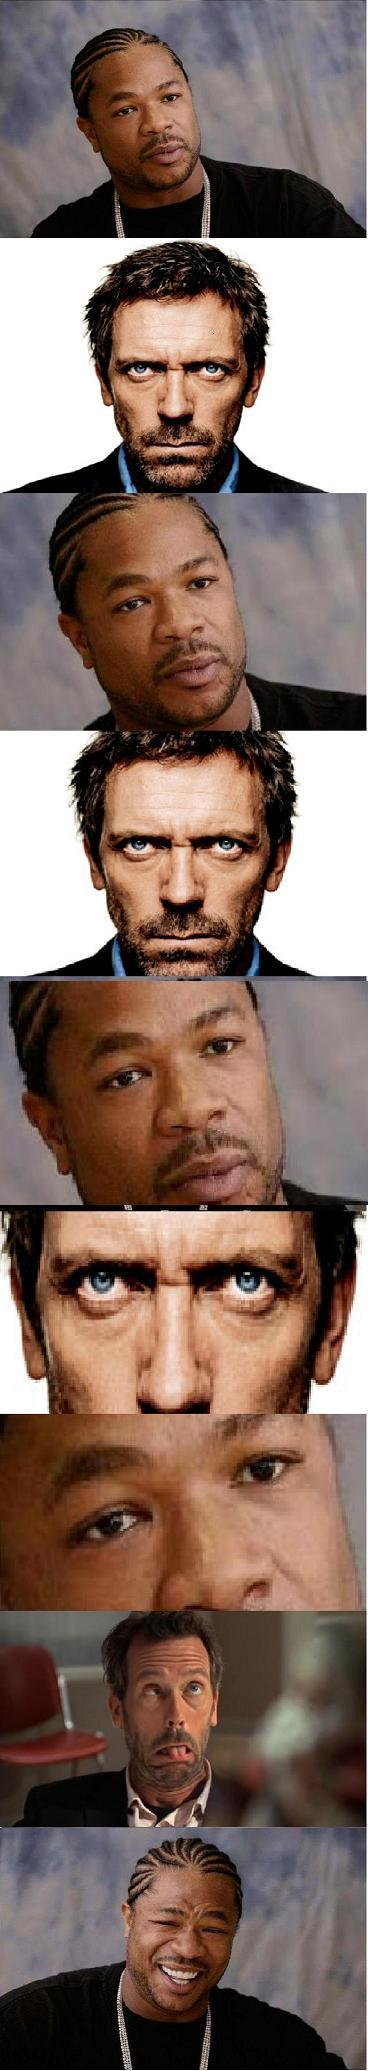 Xzibit vs House